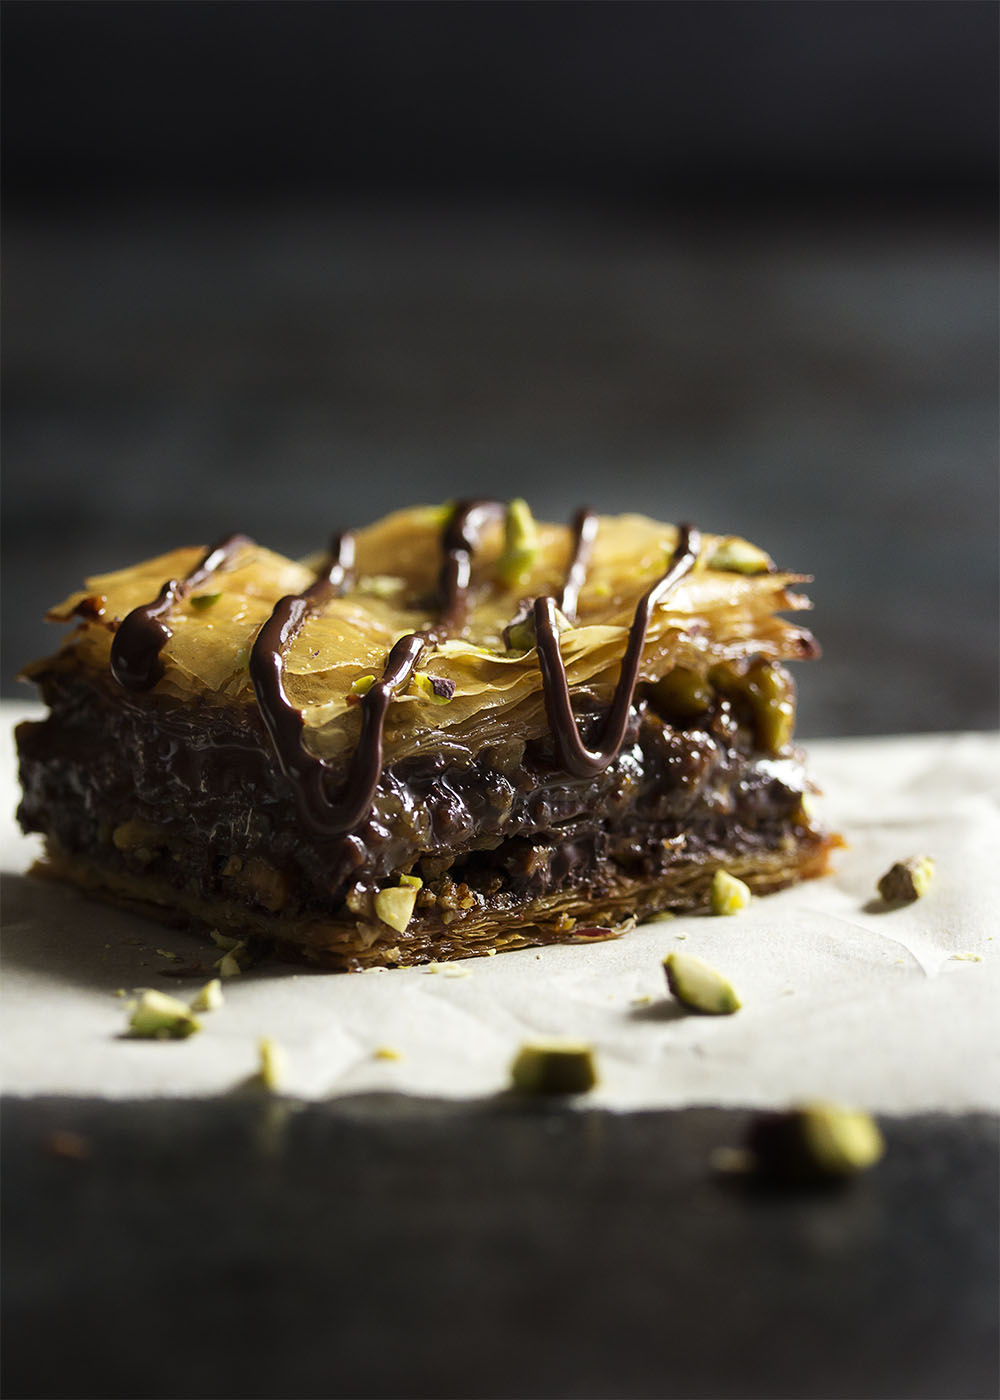 This chocolate baklava is packed full of pistachios and bittersweet chocolate, then drizzled with a honey syrup to make wonderfully rich Greek dessert! | justalittlebitofbacon.com